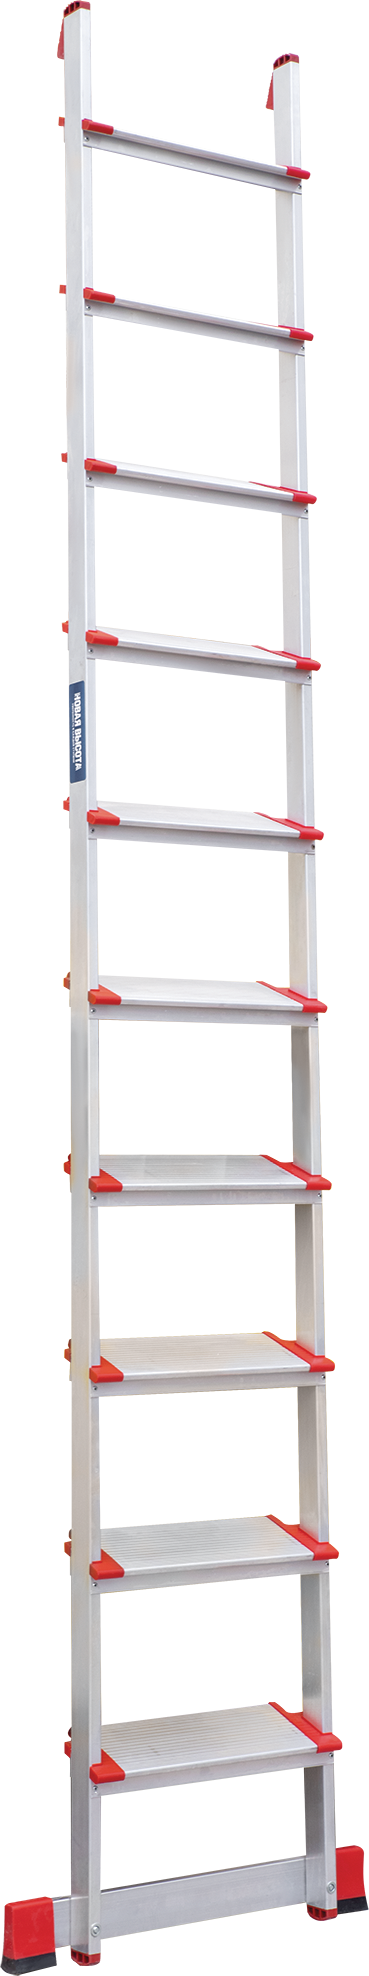 Single aluminium rung ladder with steps NV 5170